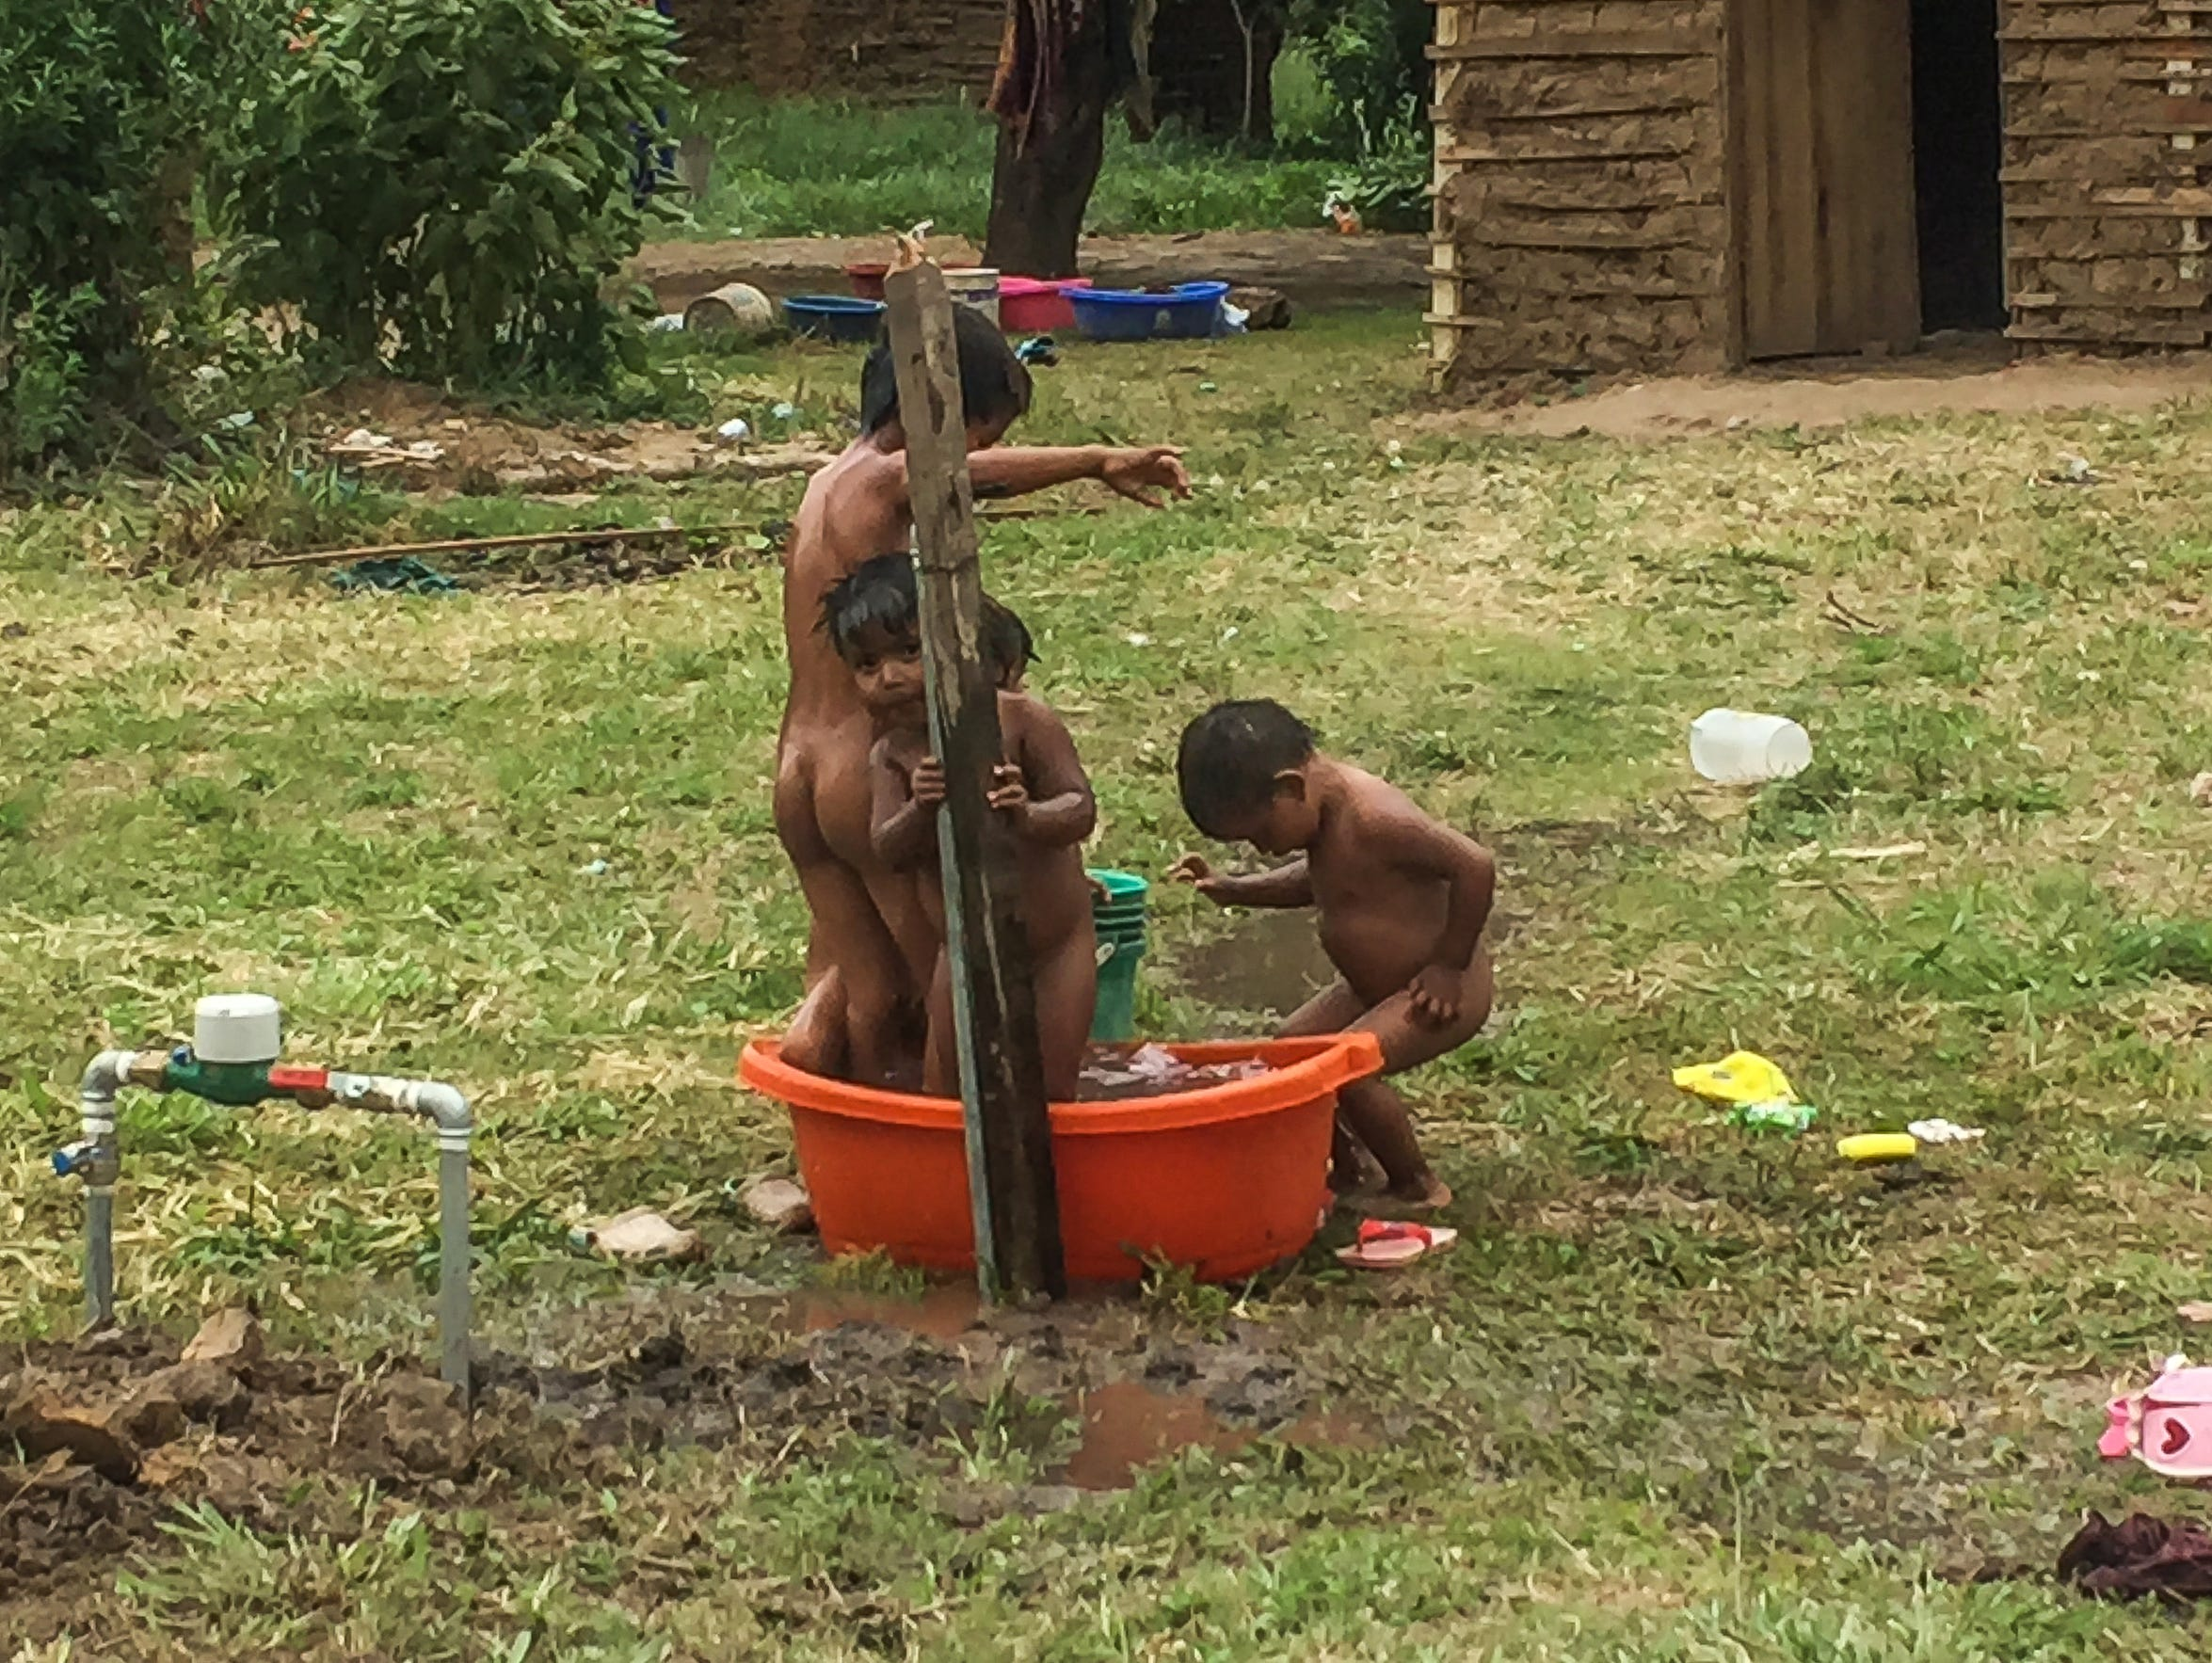 Children wash beneath a water spigot in an Ayoreo village